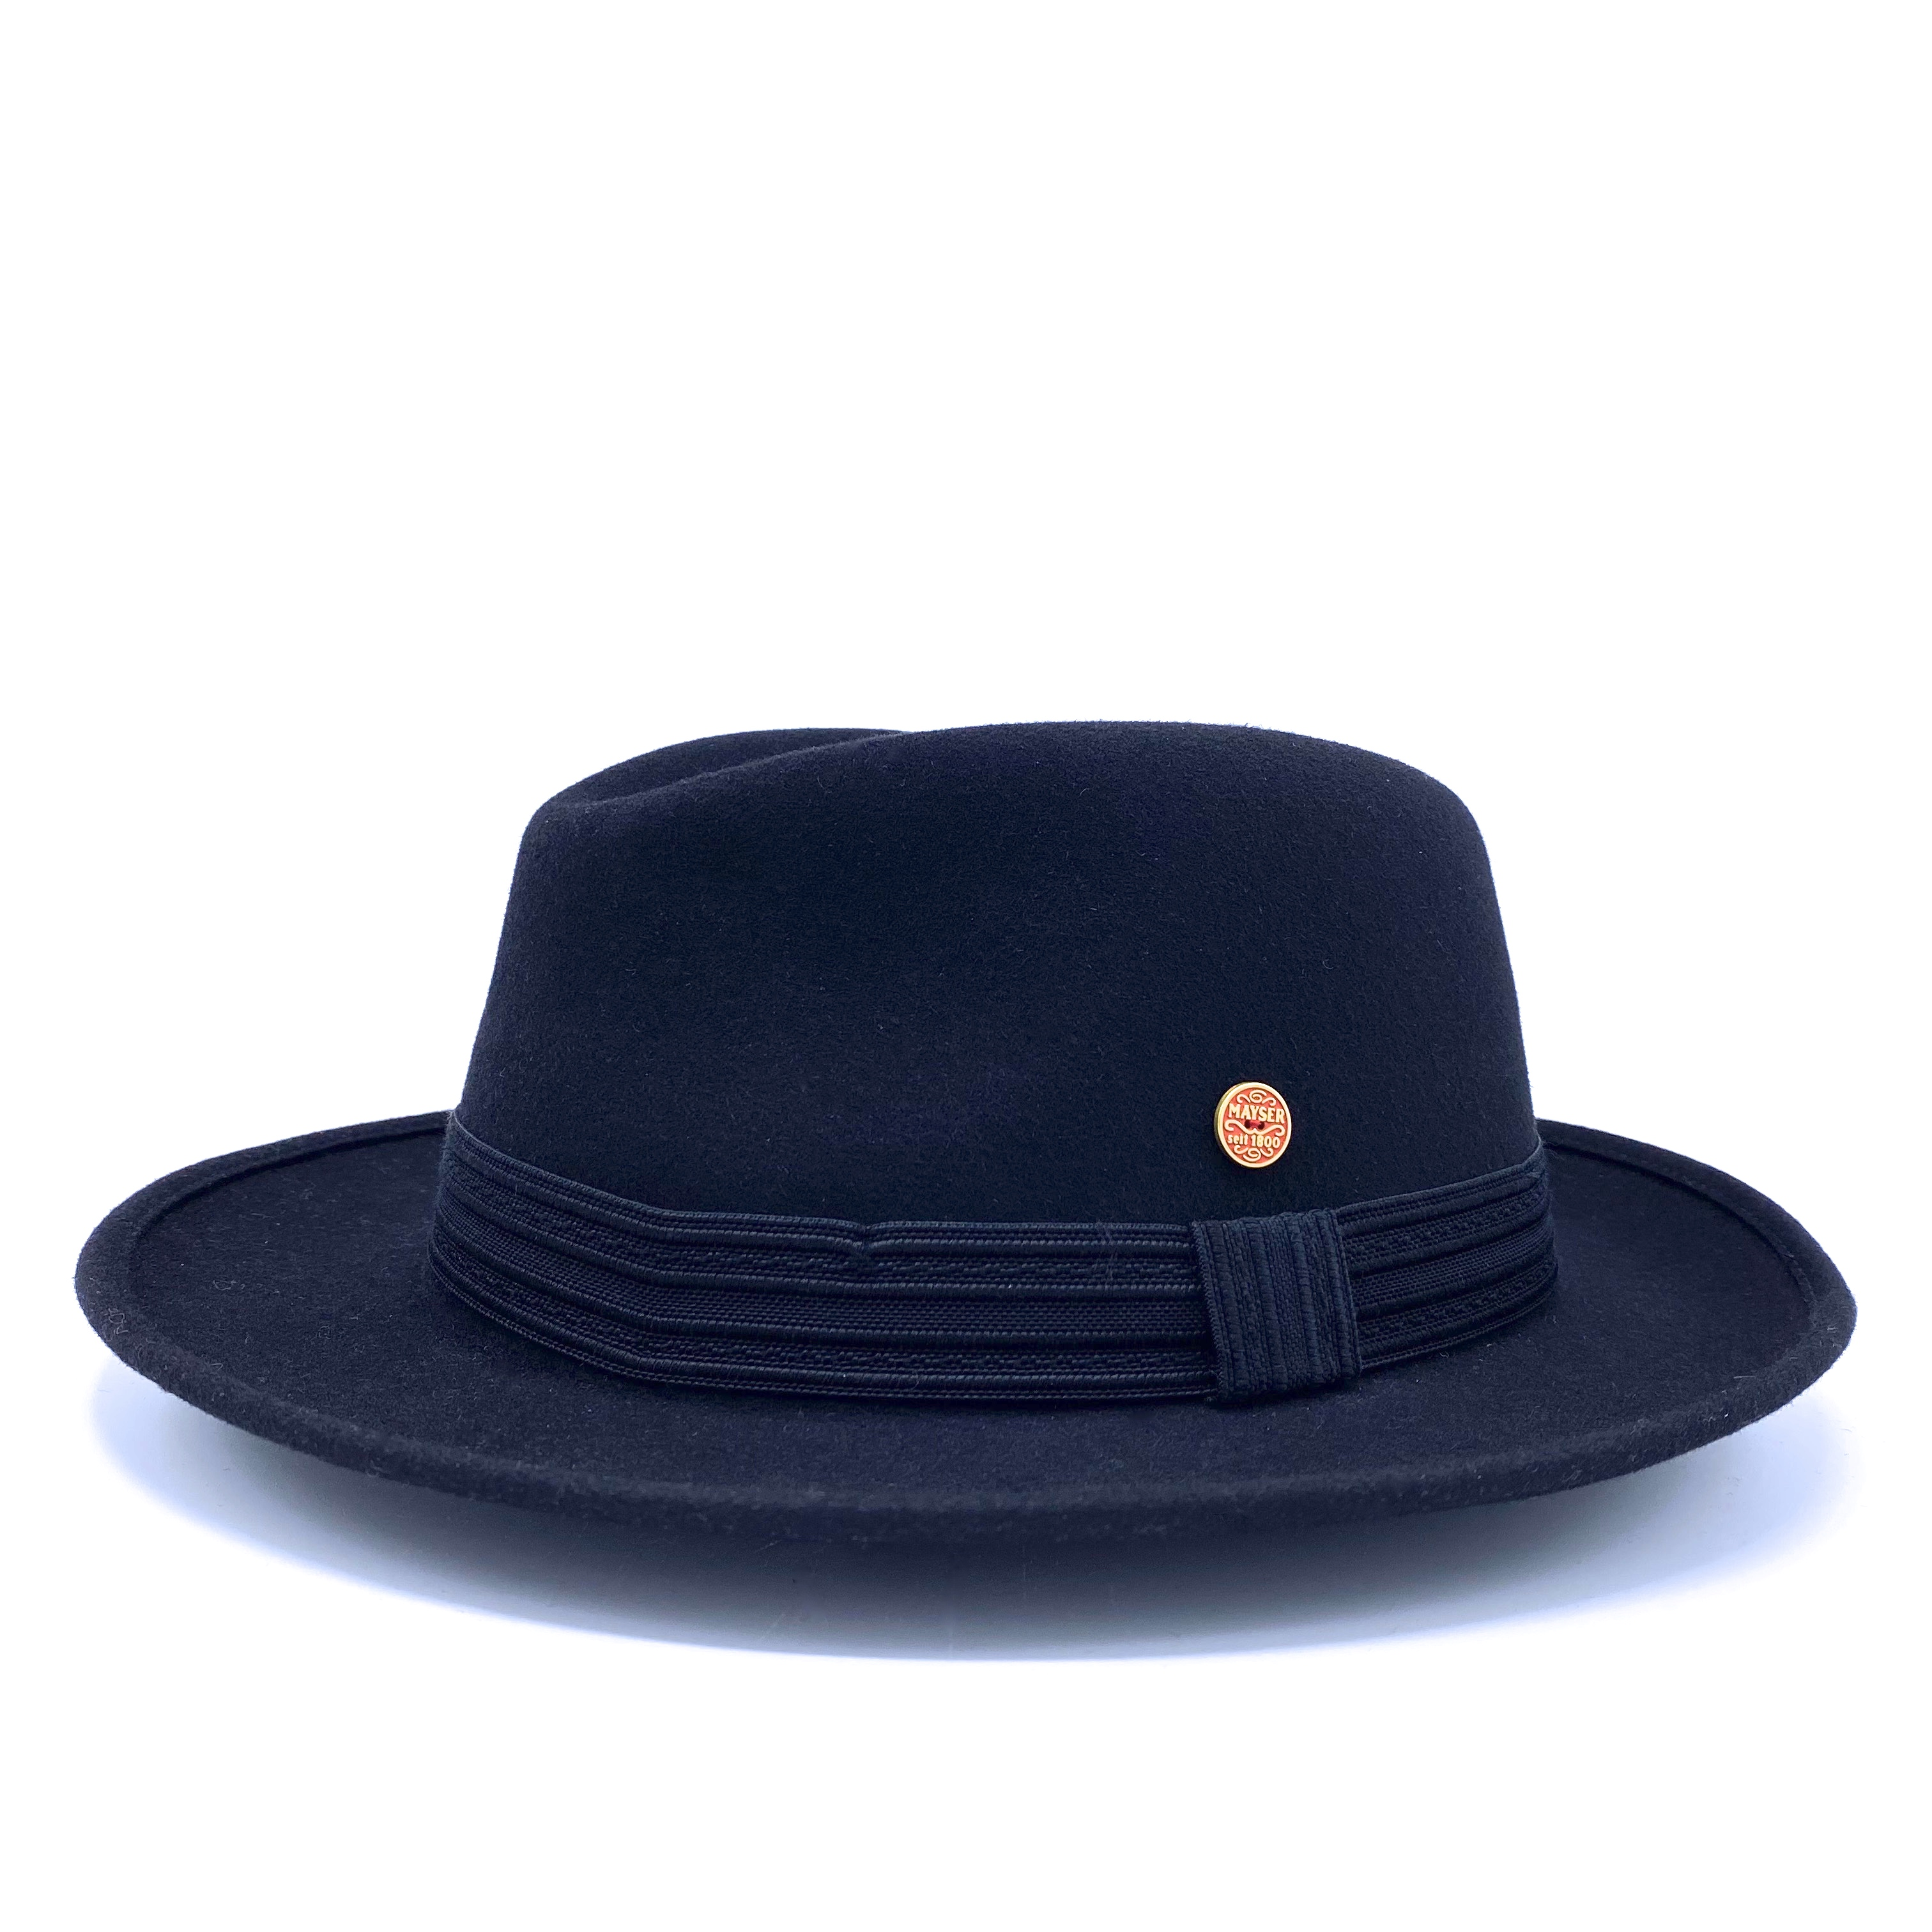 Mayser Laurel Fedora Black